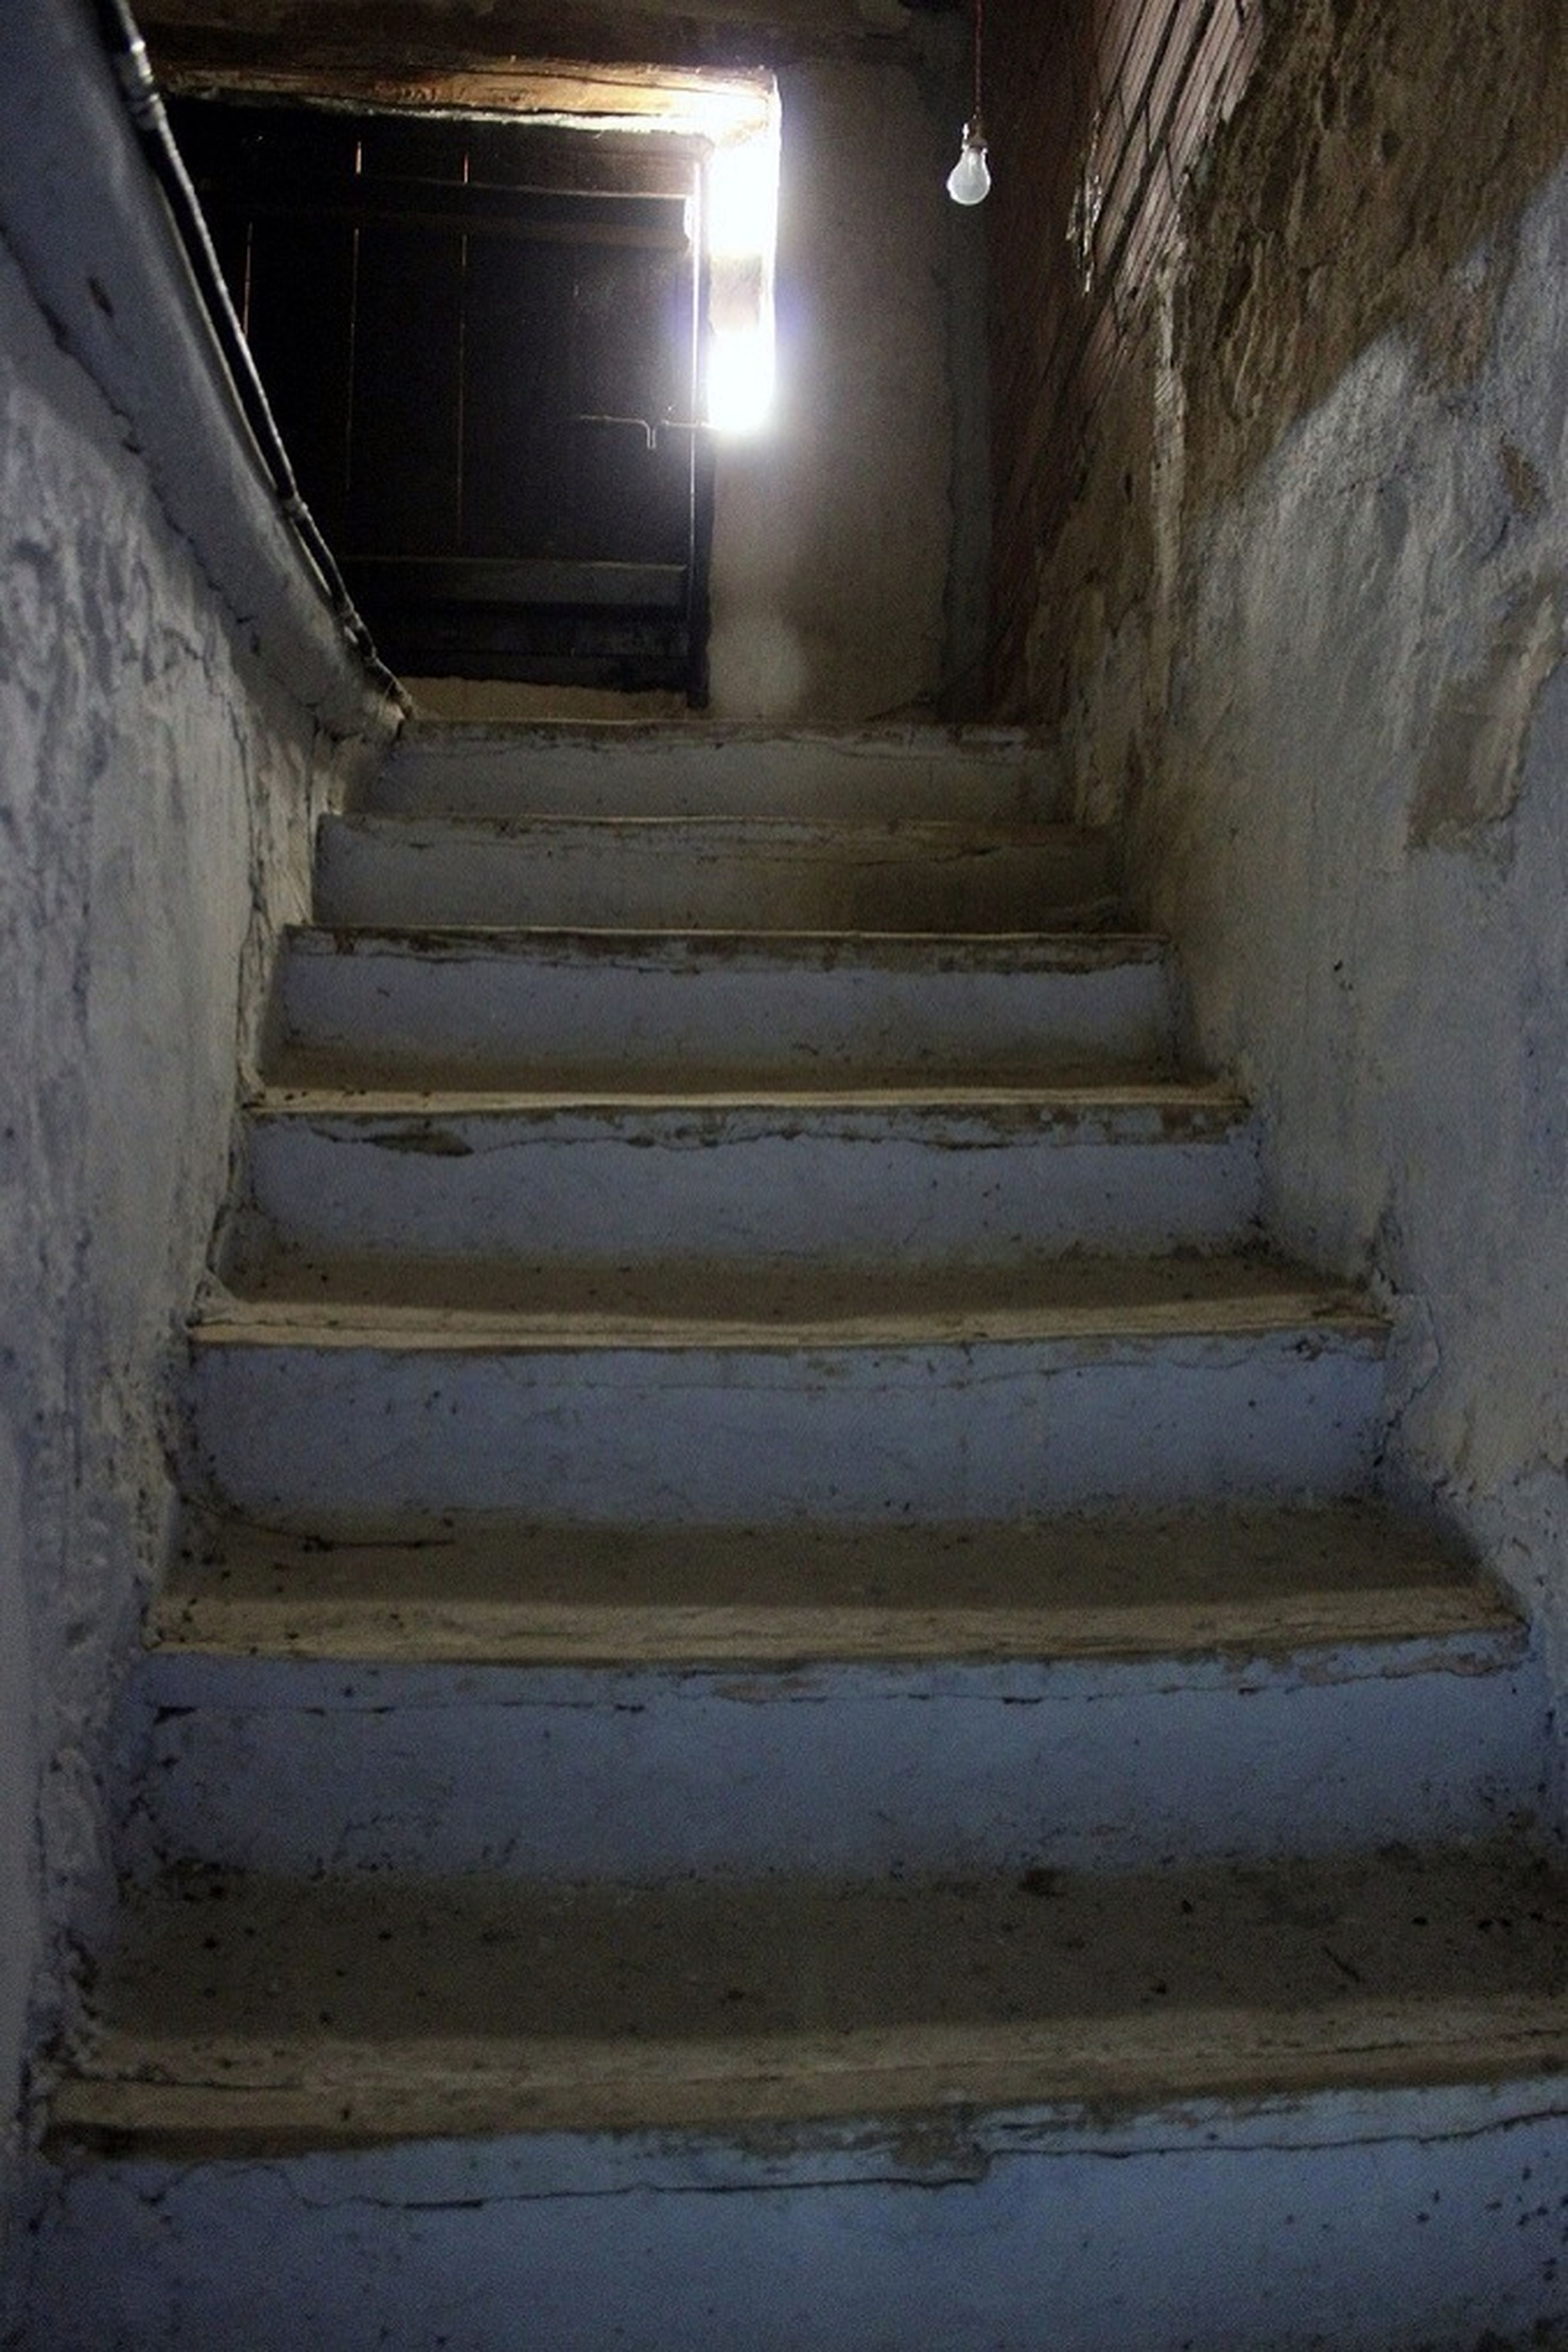 architecture, built structure, steps, indoors, the way forward, steps and staircases, staircase, wall - building feature, illuminated, old, building, abandoned, building exterior, diminishing perspective, narrow, wall, weathered, no people, railing, night